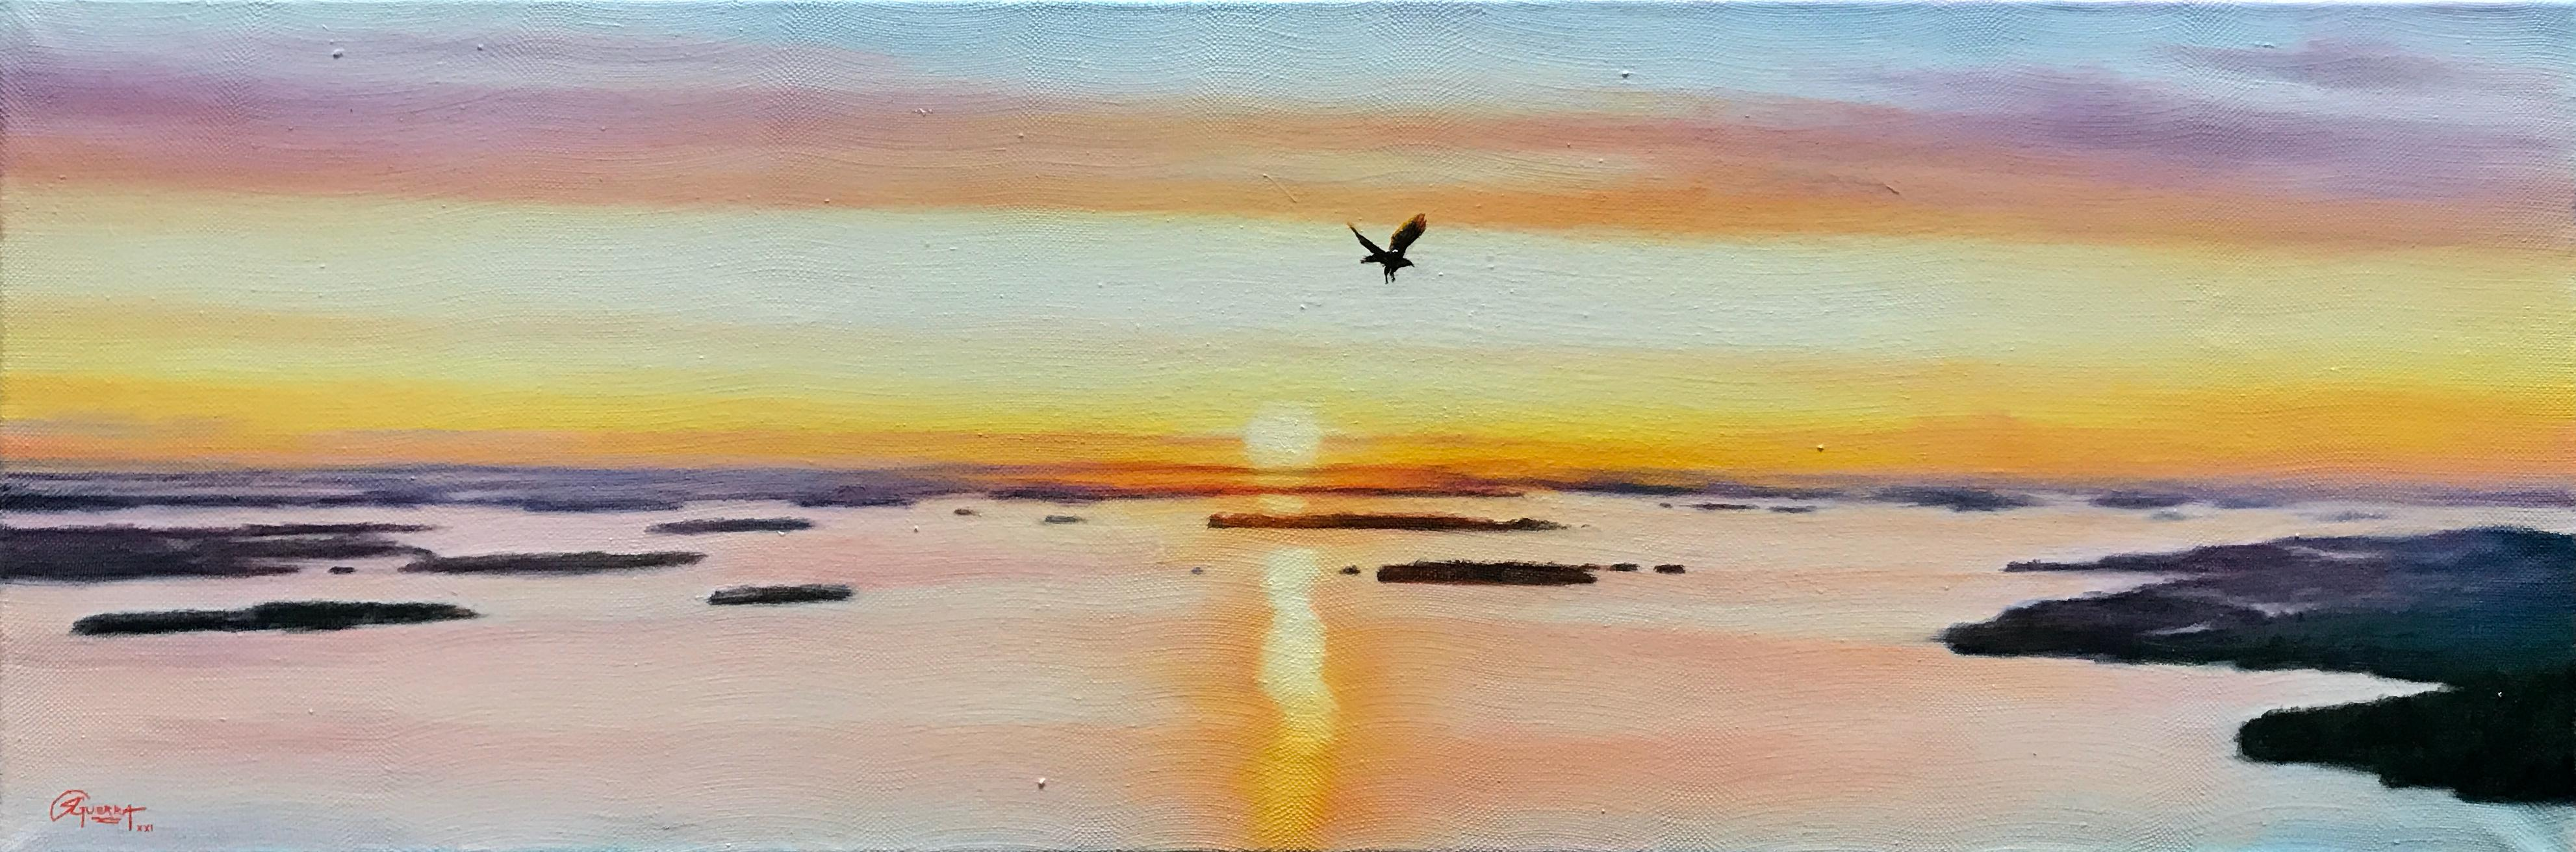 Finnish Sunset with Flying Eagle, Rafael Guerra Painting